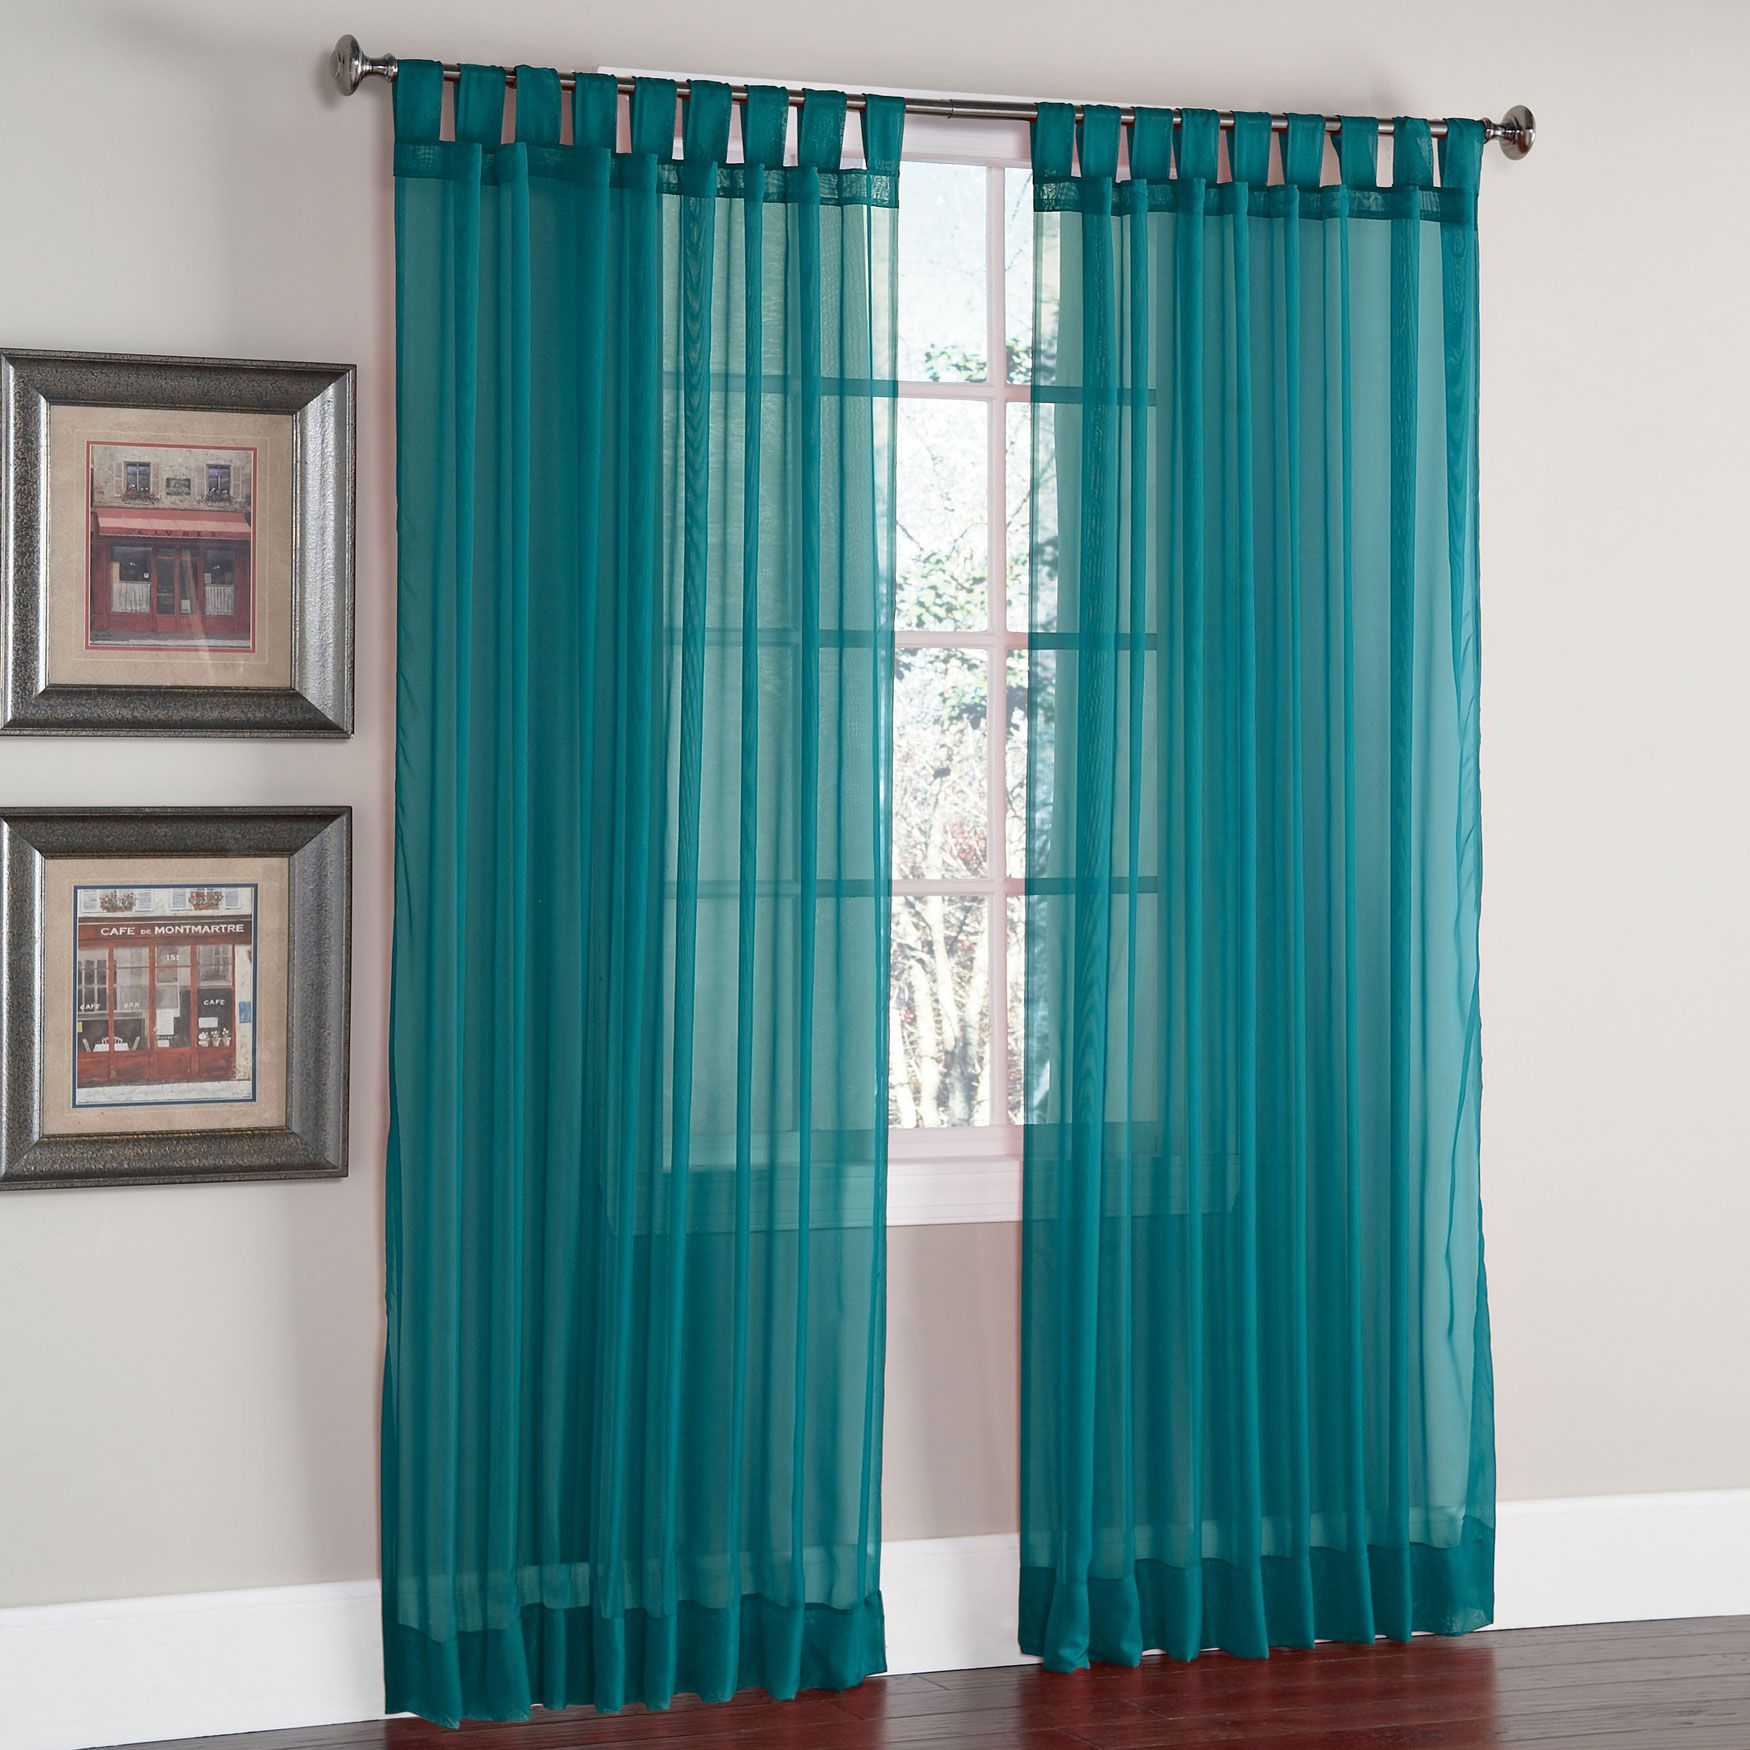 Living room curtains home ideas pinterest living for Curtains in living room